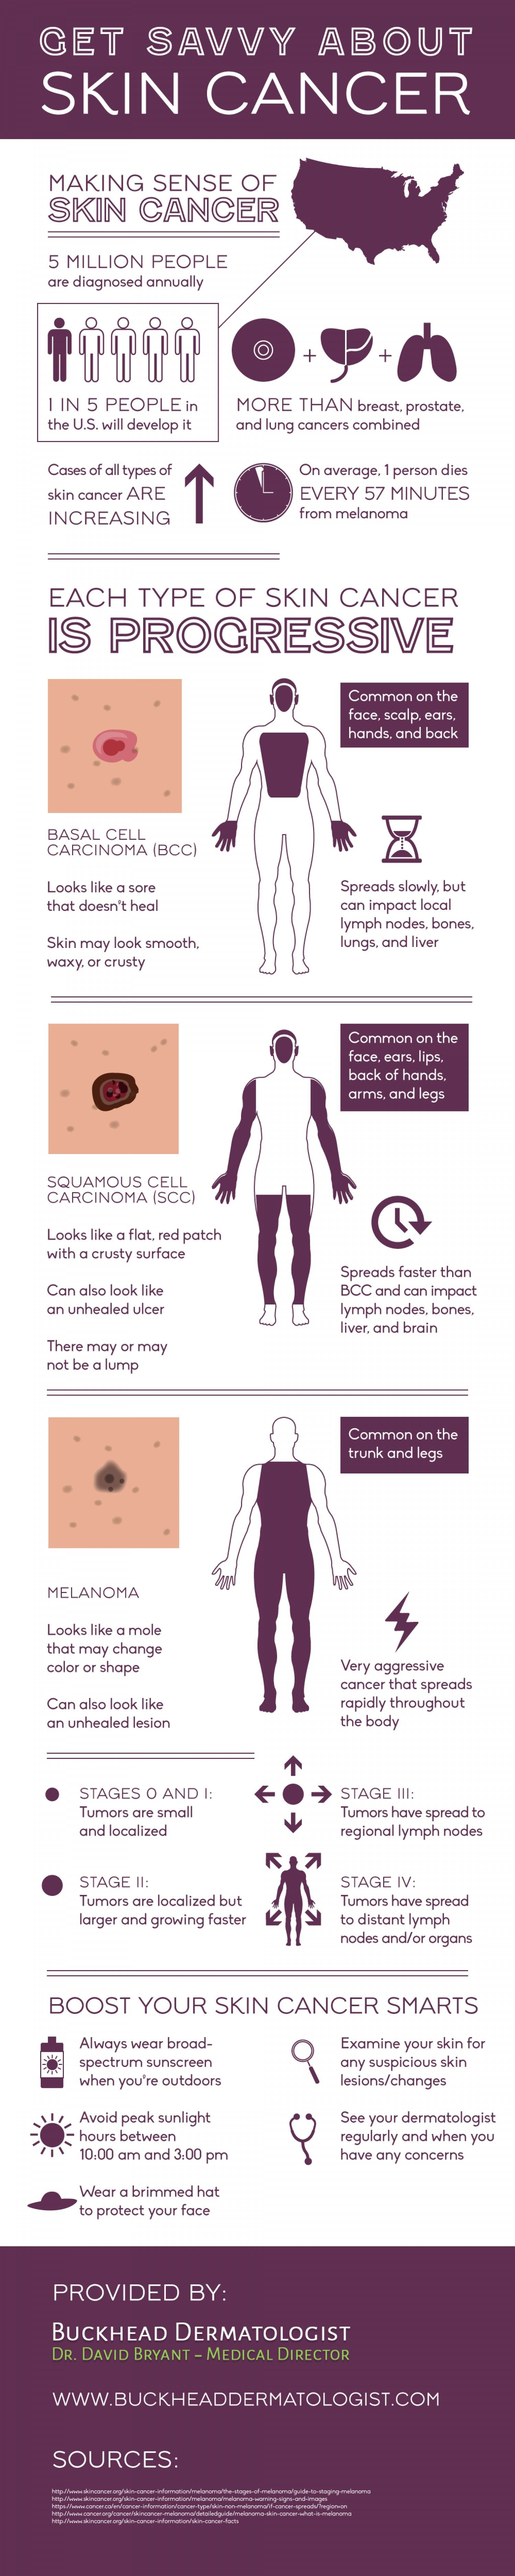 medium resolution of did you know that 5 million people are diagnosed with skin cancer each year